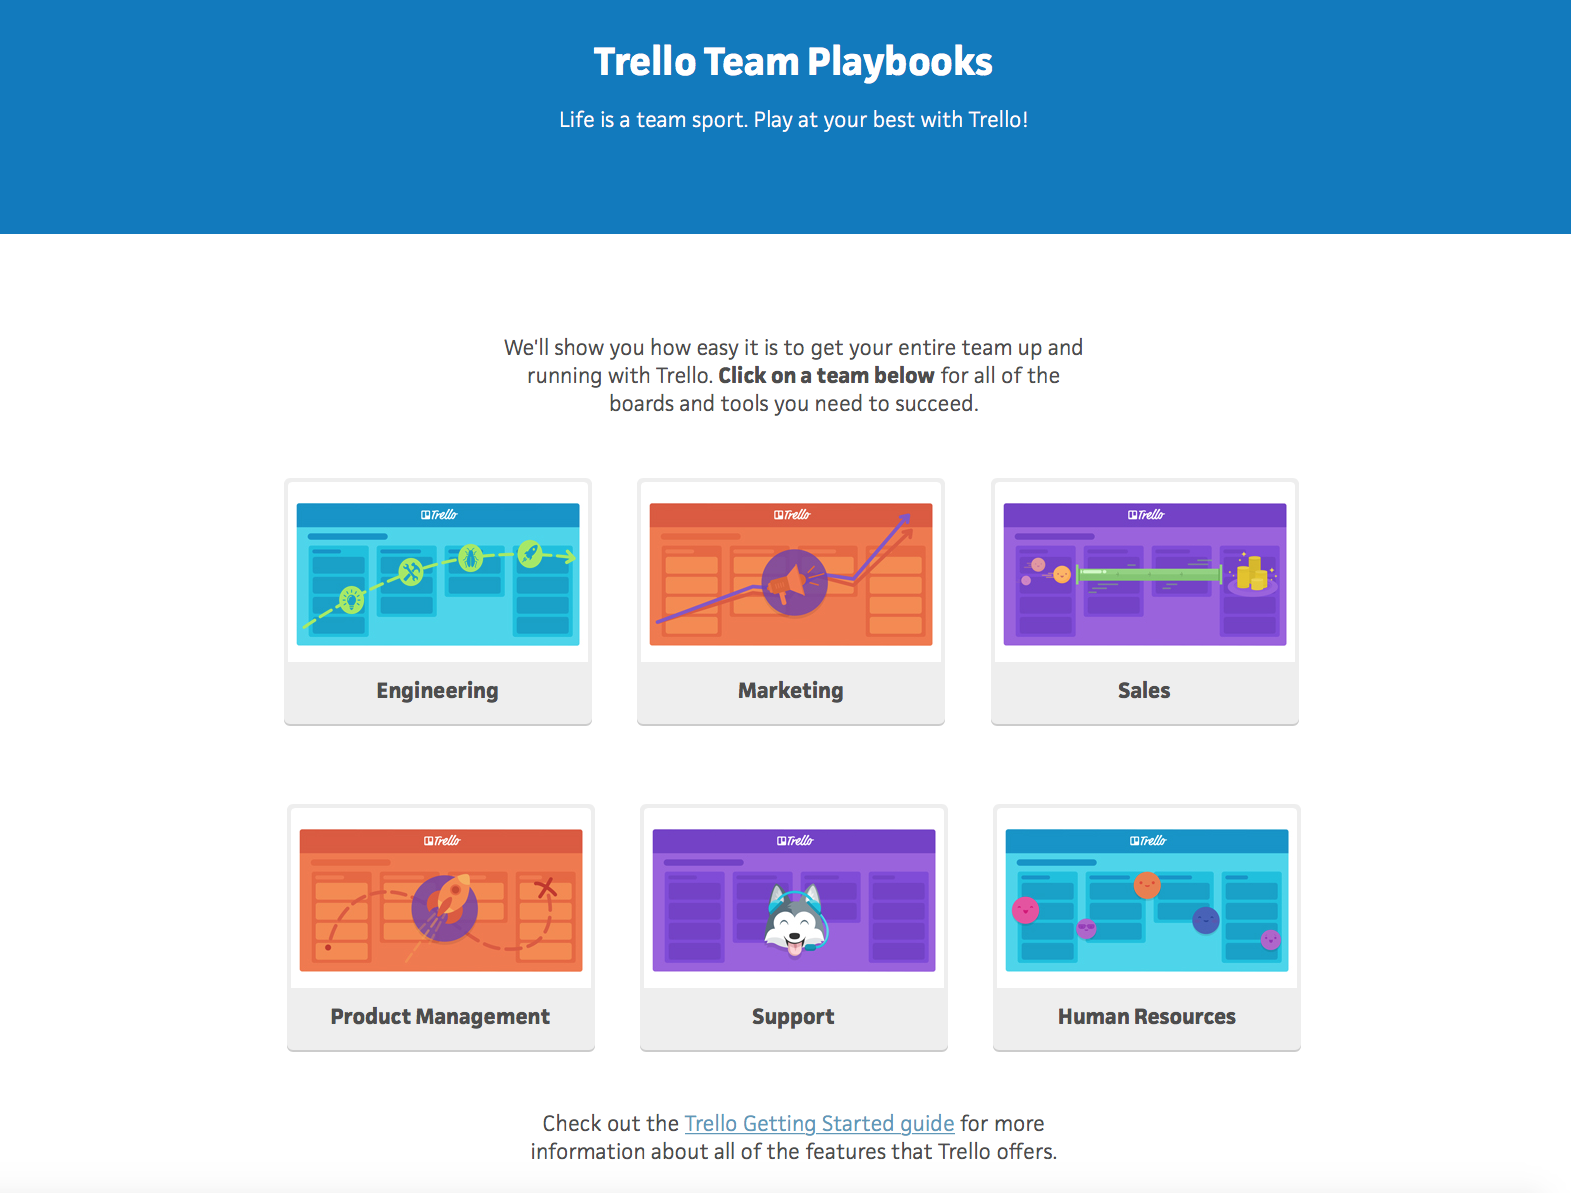 trello playbooks